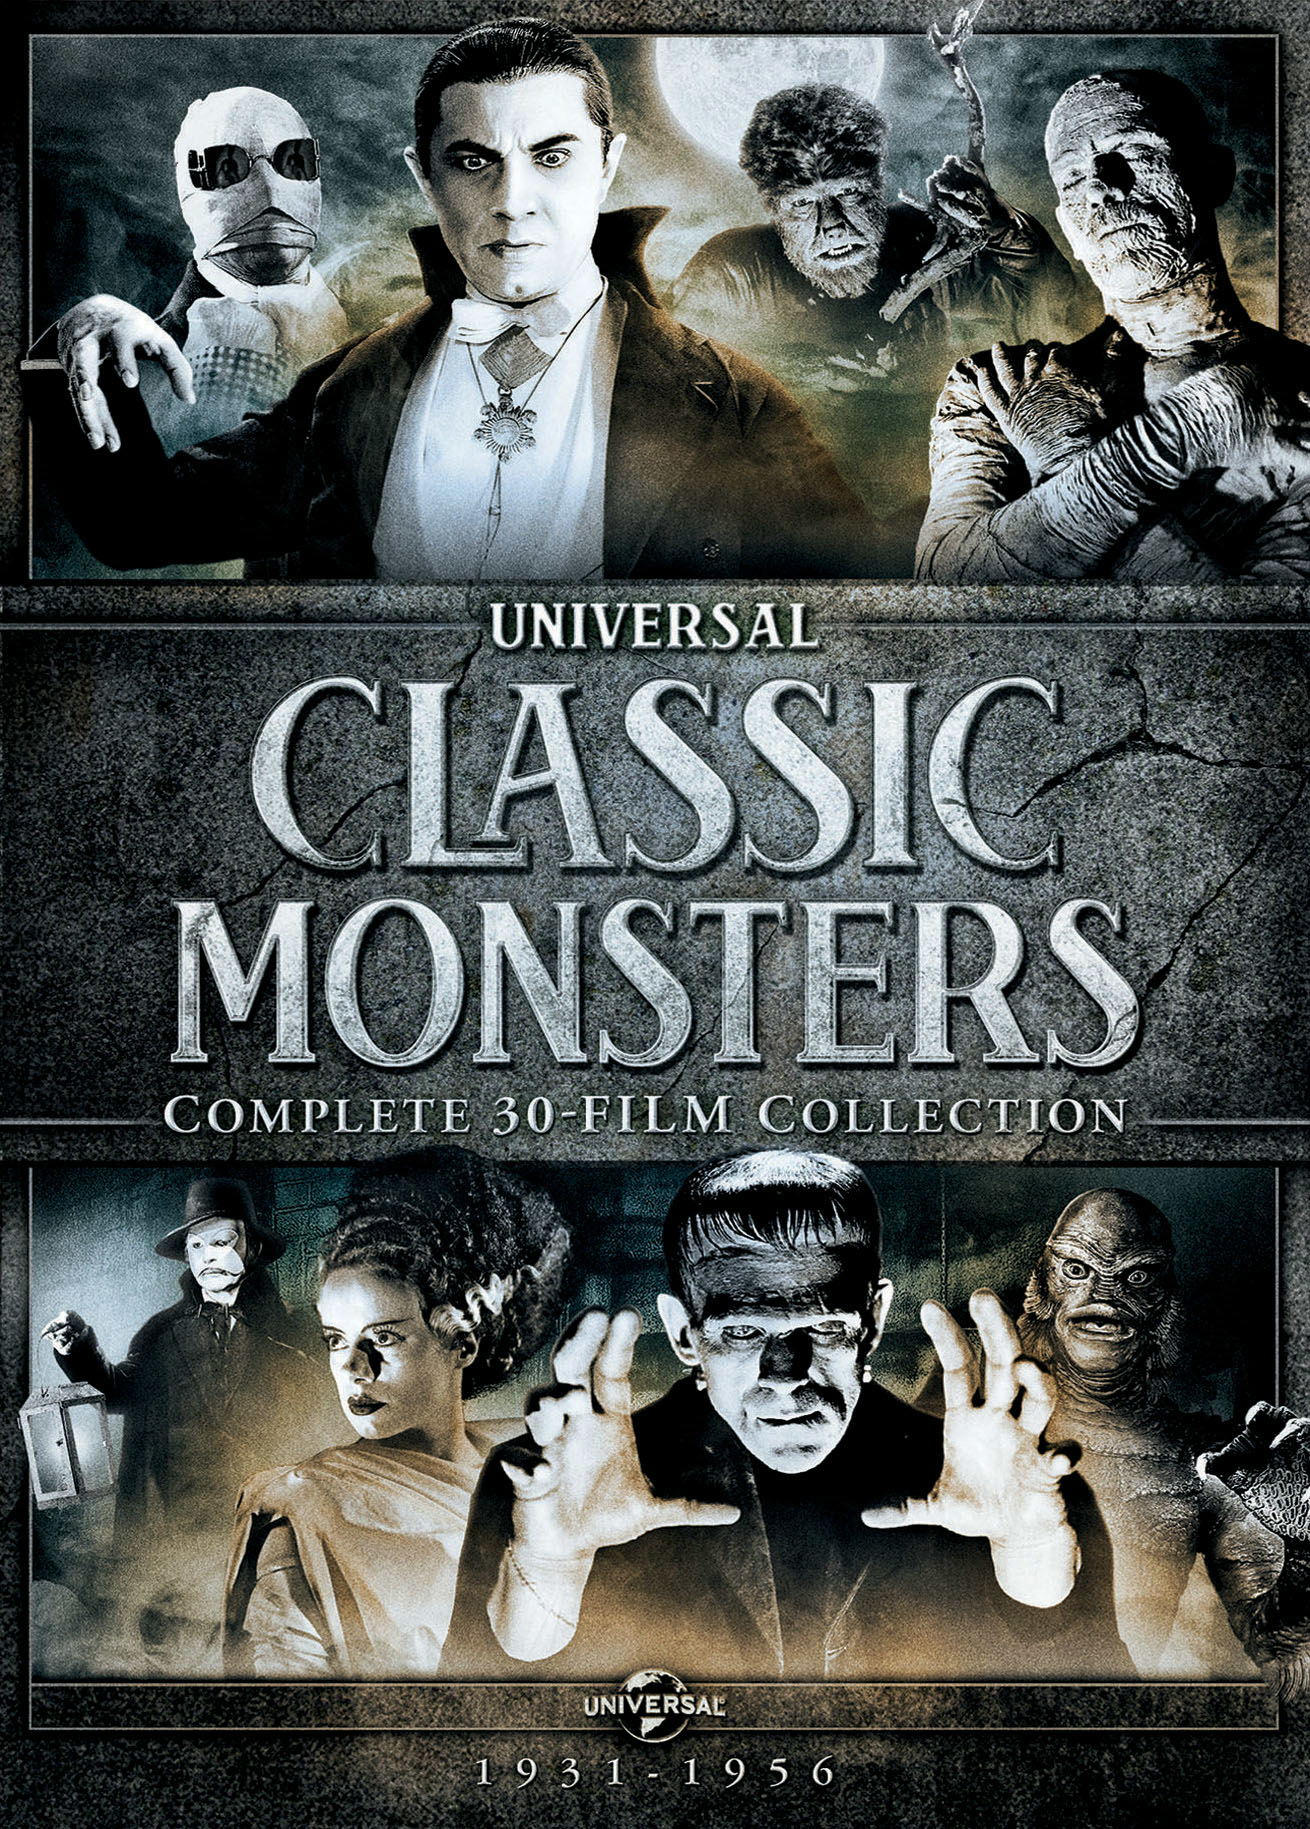 Universal Classic Monsters: Complete 30-Film Collection (Box Set) [DVD]